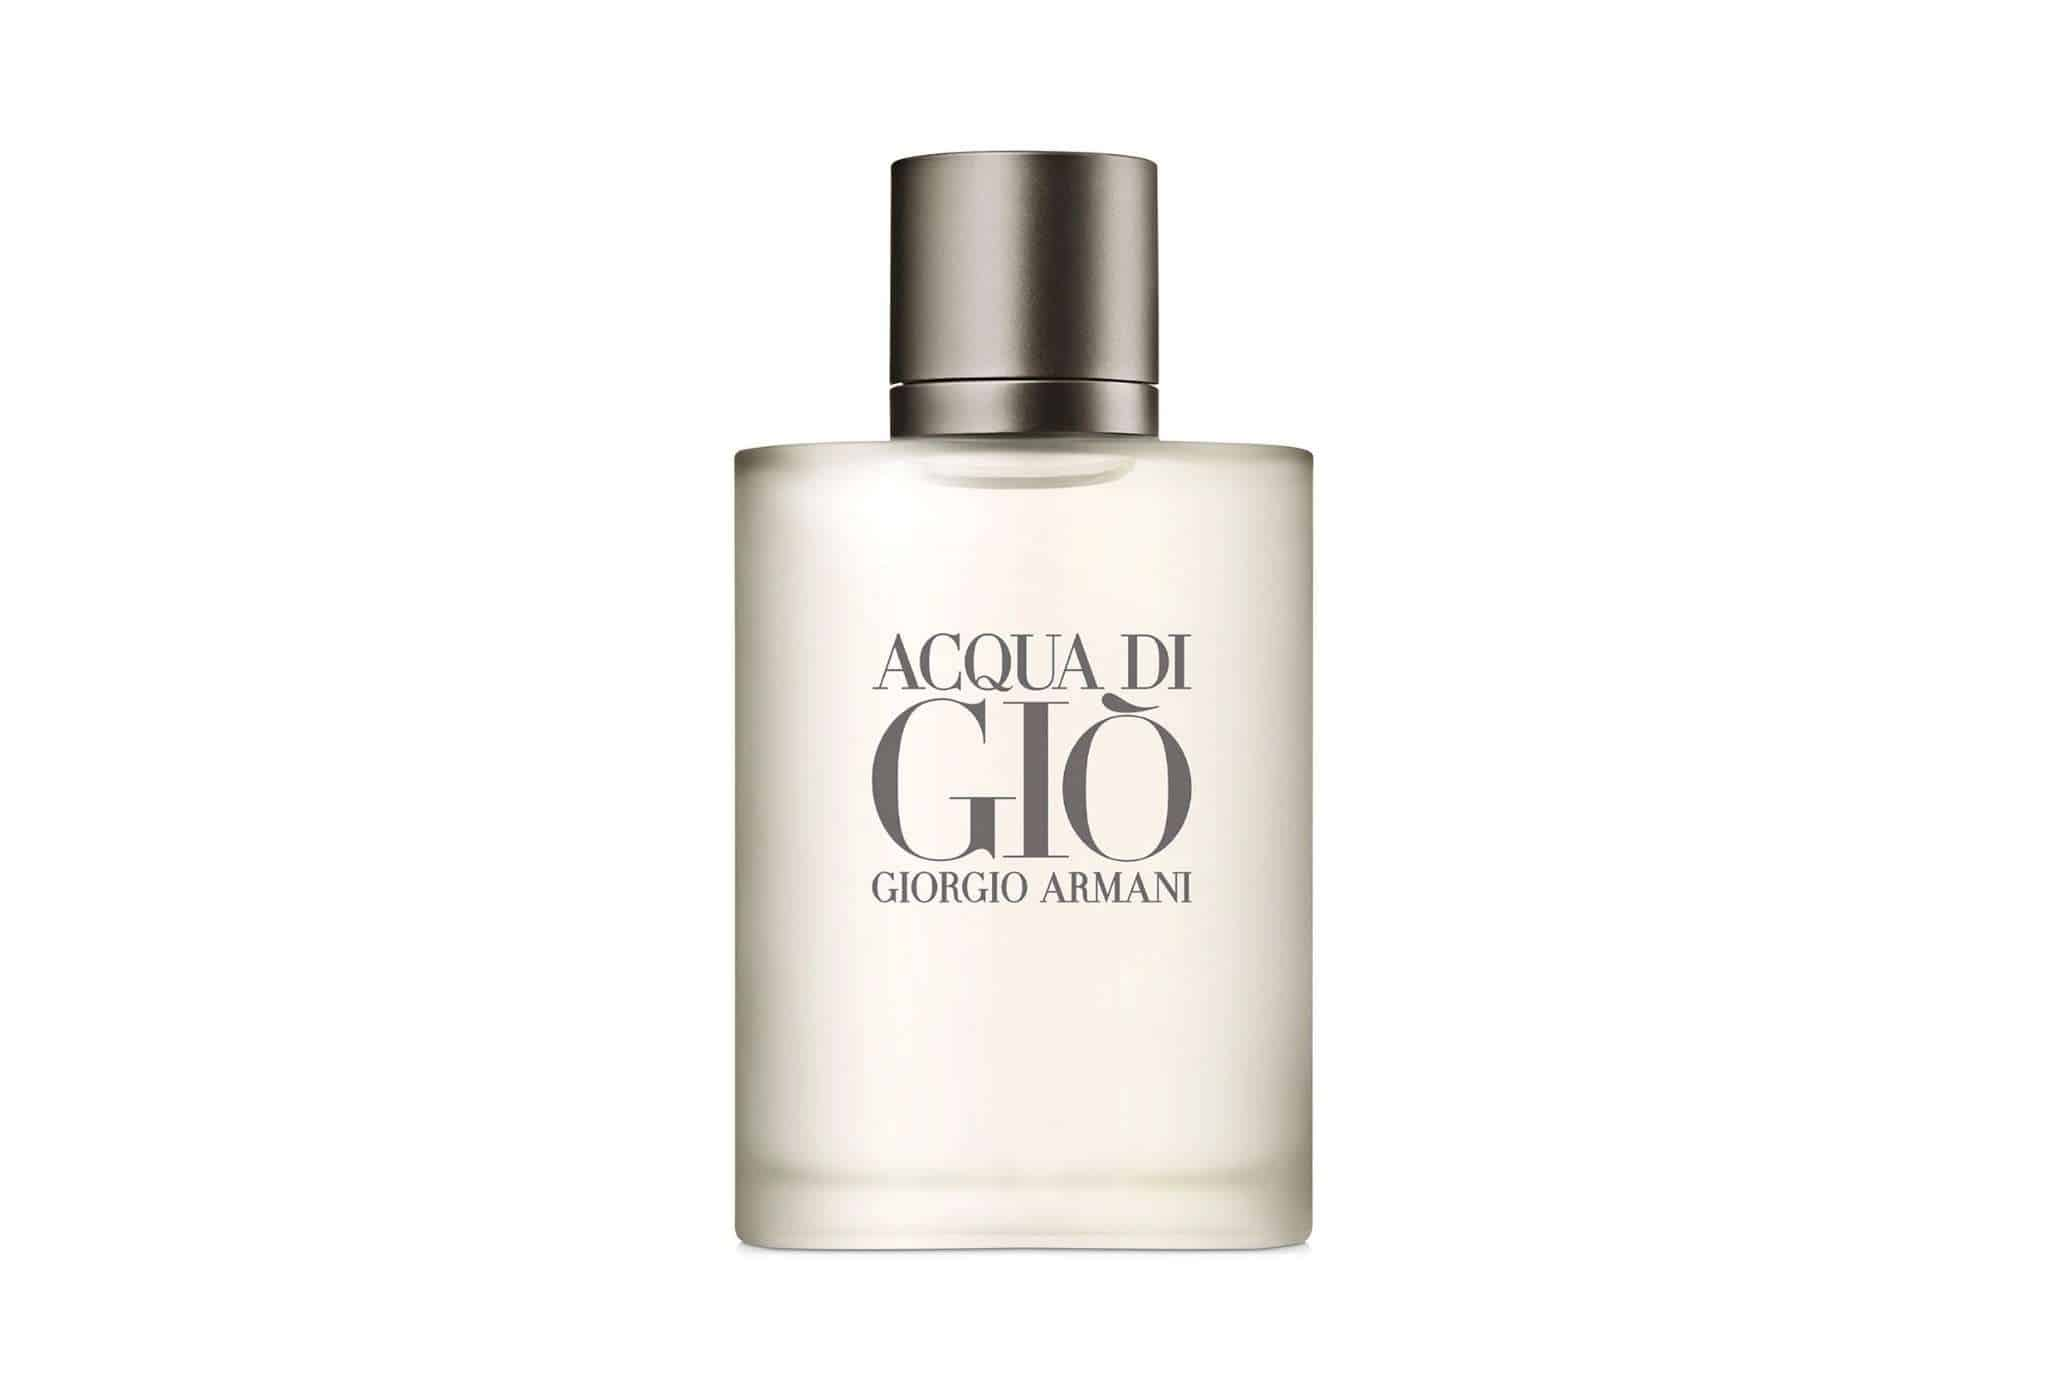 Acqua Di Gio Pour Homme is one of the most complimented men's colognes